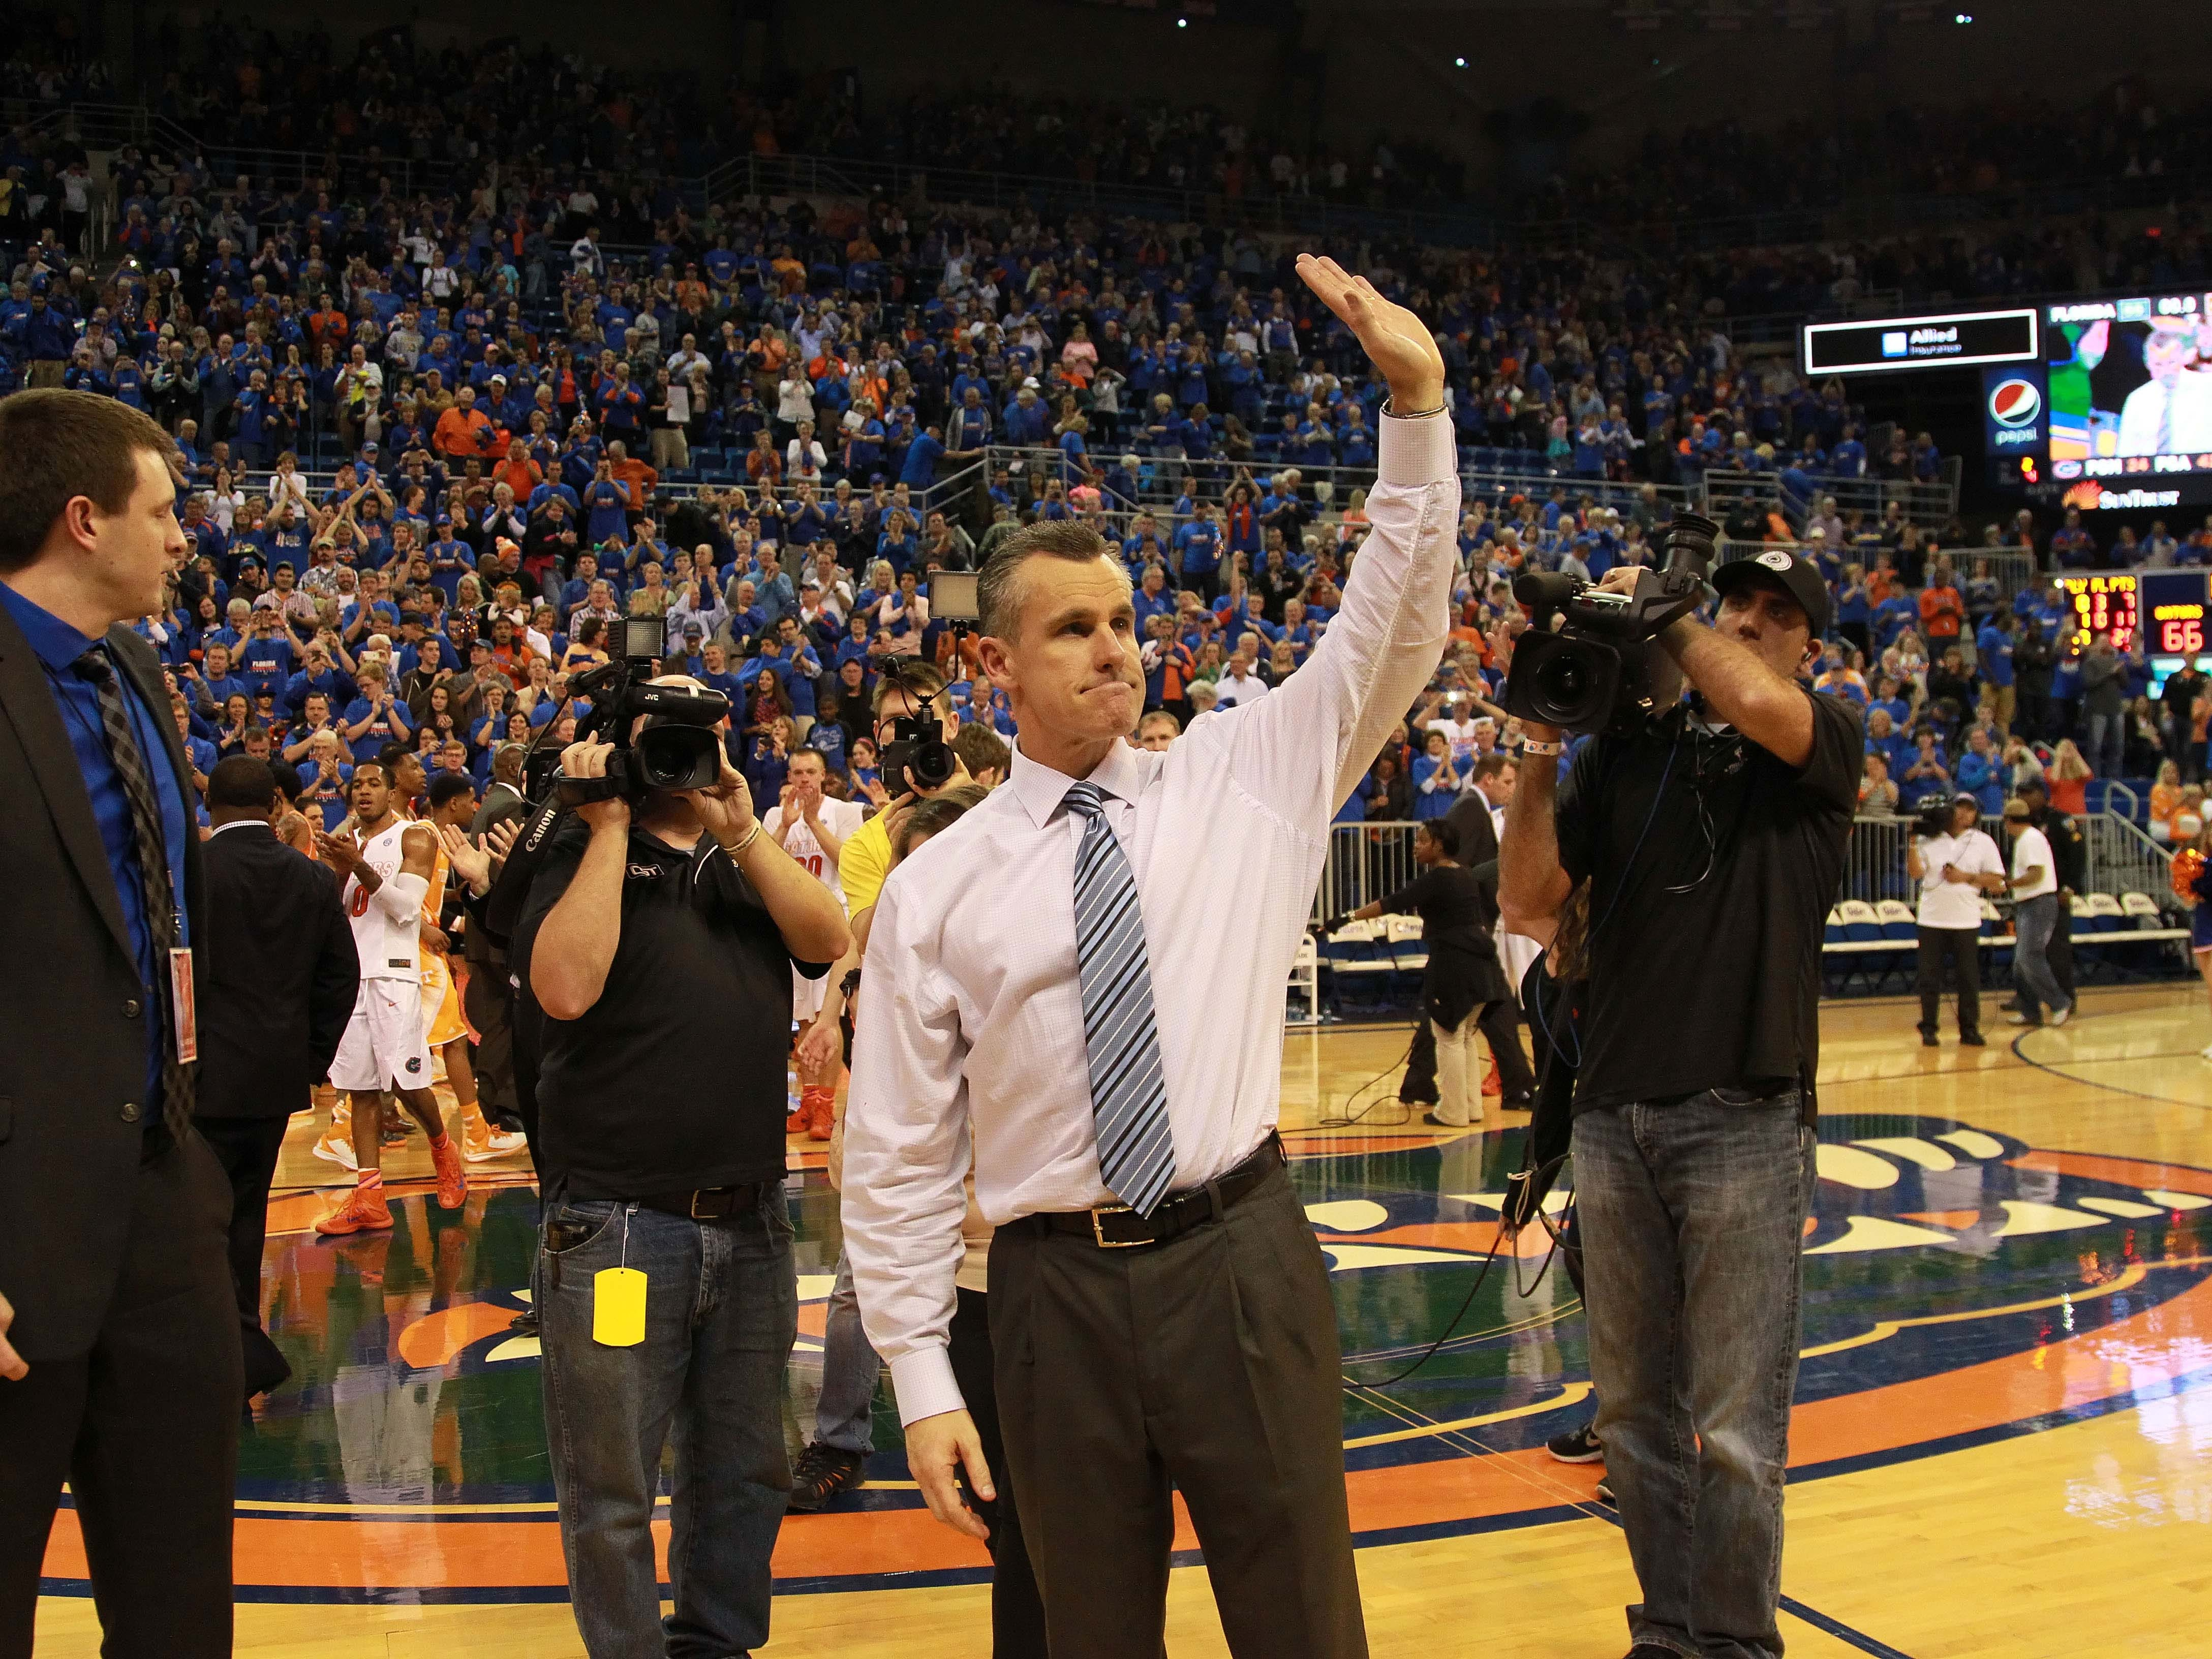 Florida Gators head coach Billy Donovan waves to the fans after reaching his 500th career win against the Tennessee Volunteers at the Stephen C. O'Connell Center. The Gators won 66-49.